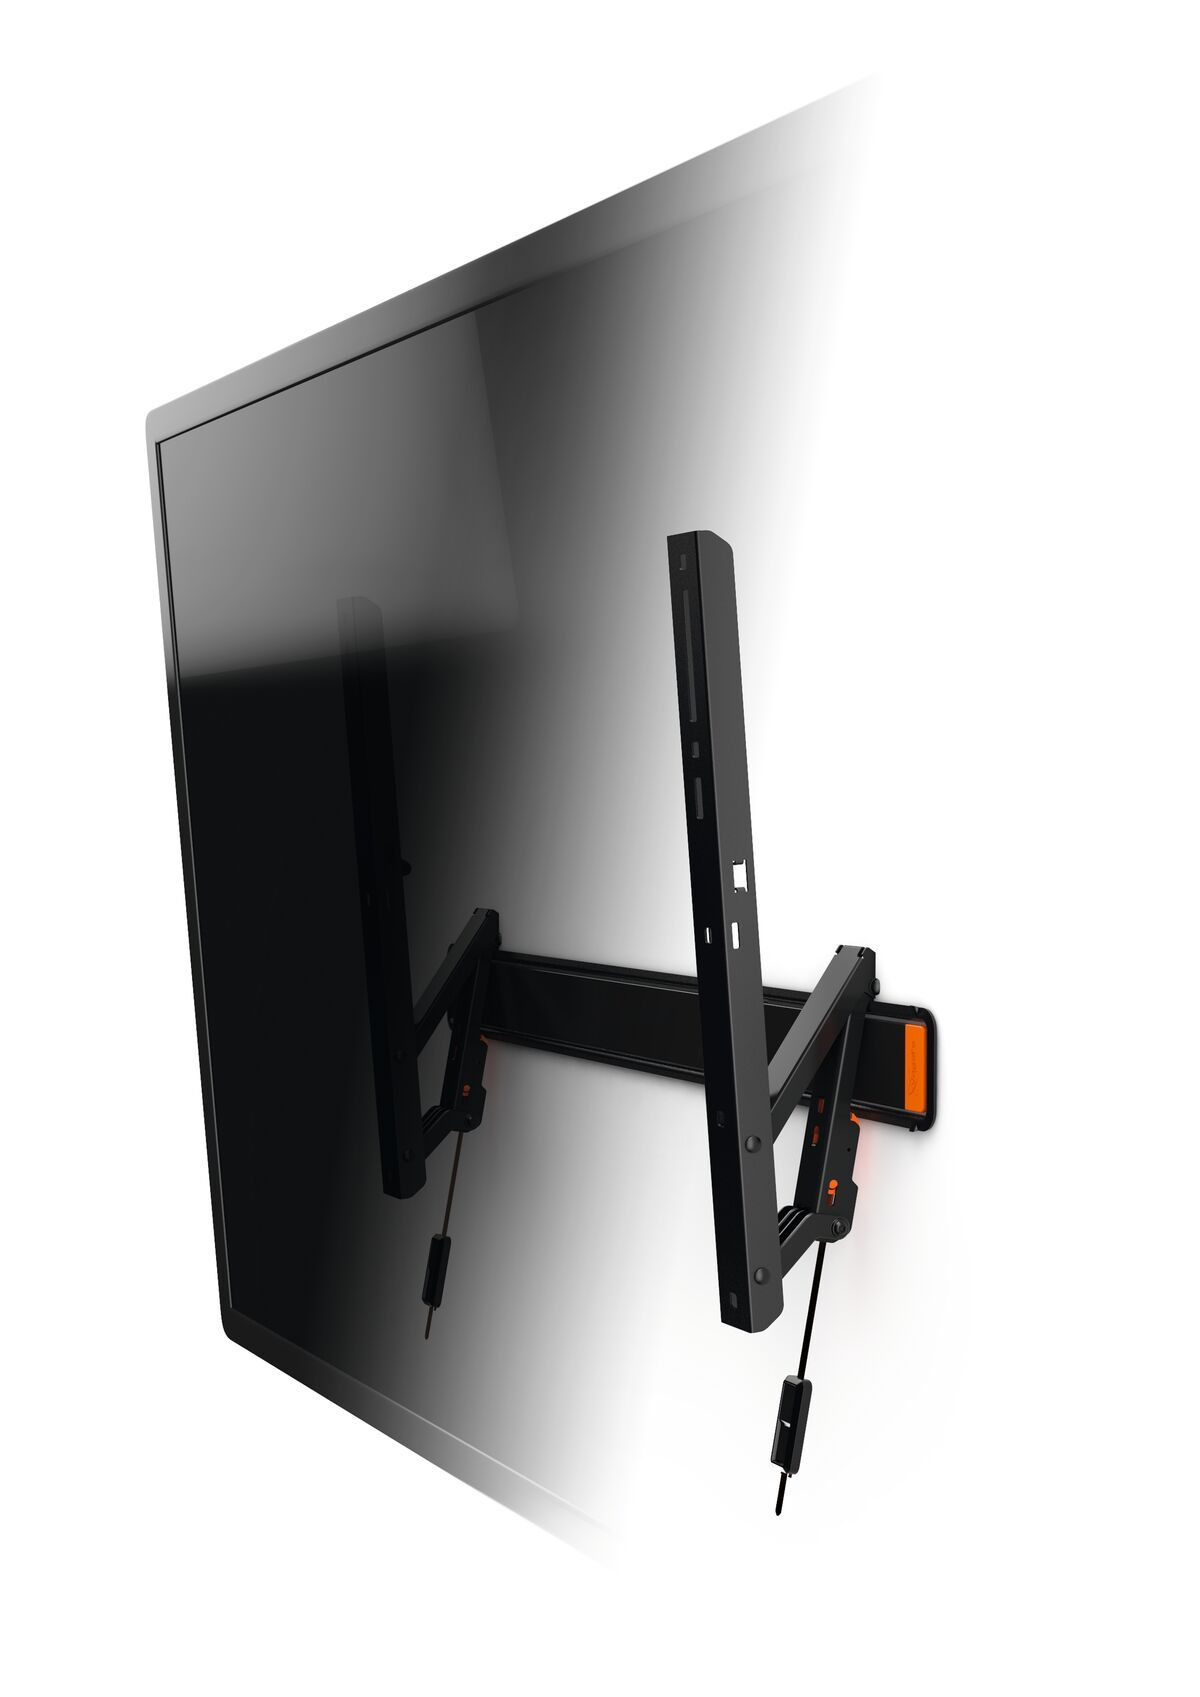 Vogel's WALL 2315 Tilting TV Wall Mount - Suitable for 40 up to 65 inch TVs up to kg - Tilt up to 15° - Detail